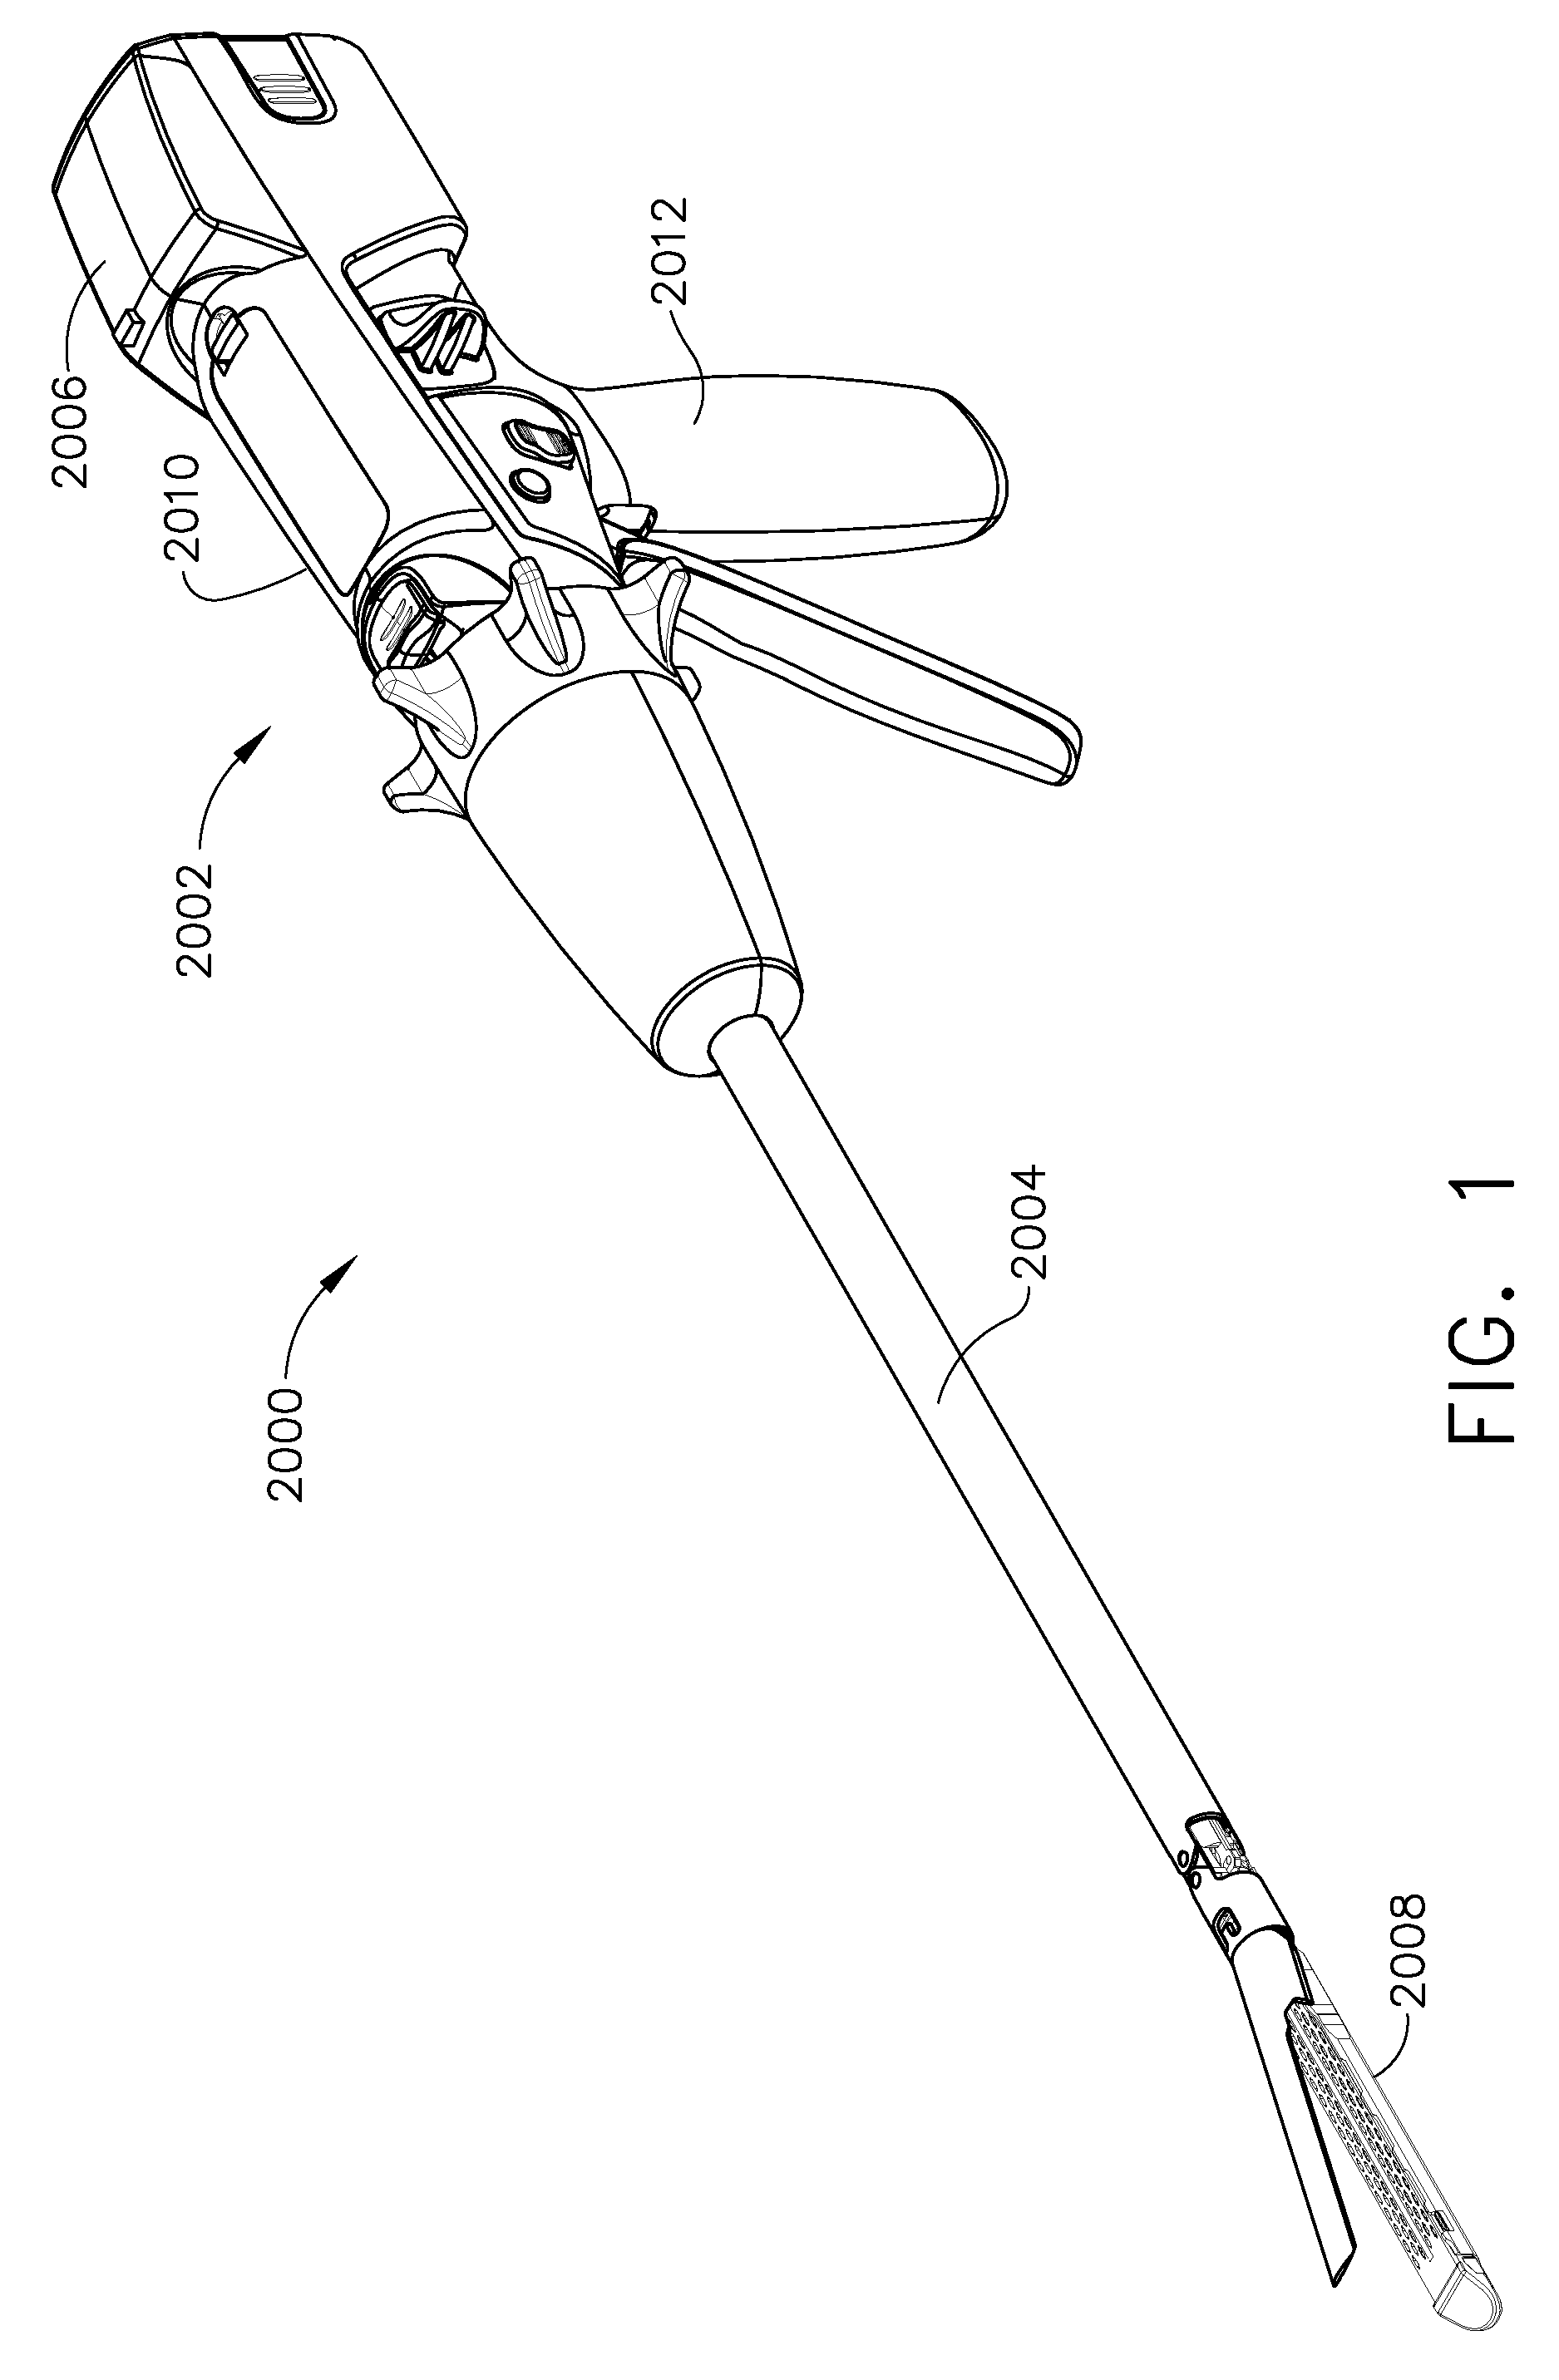 Us9690362b2 Surgical Instrument Control Circuit Having A Safety Hercules Foot Switch Wiring Diagram Processor Google Patents